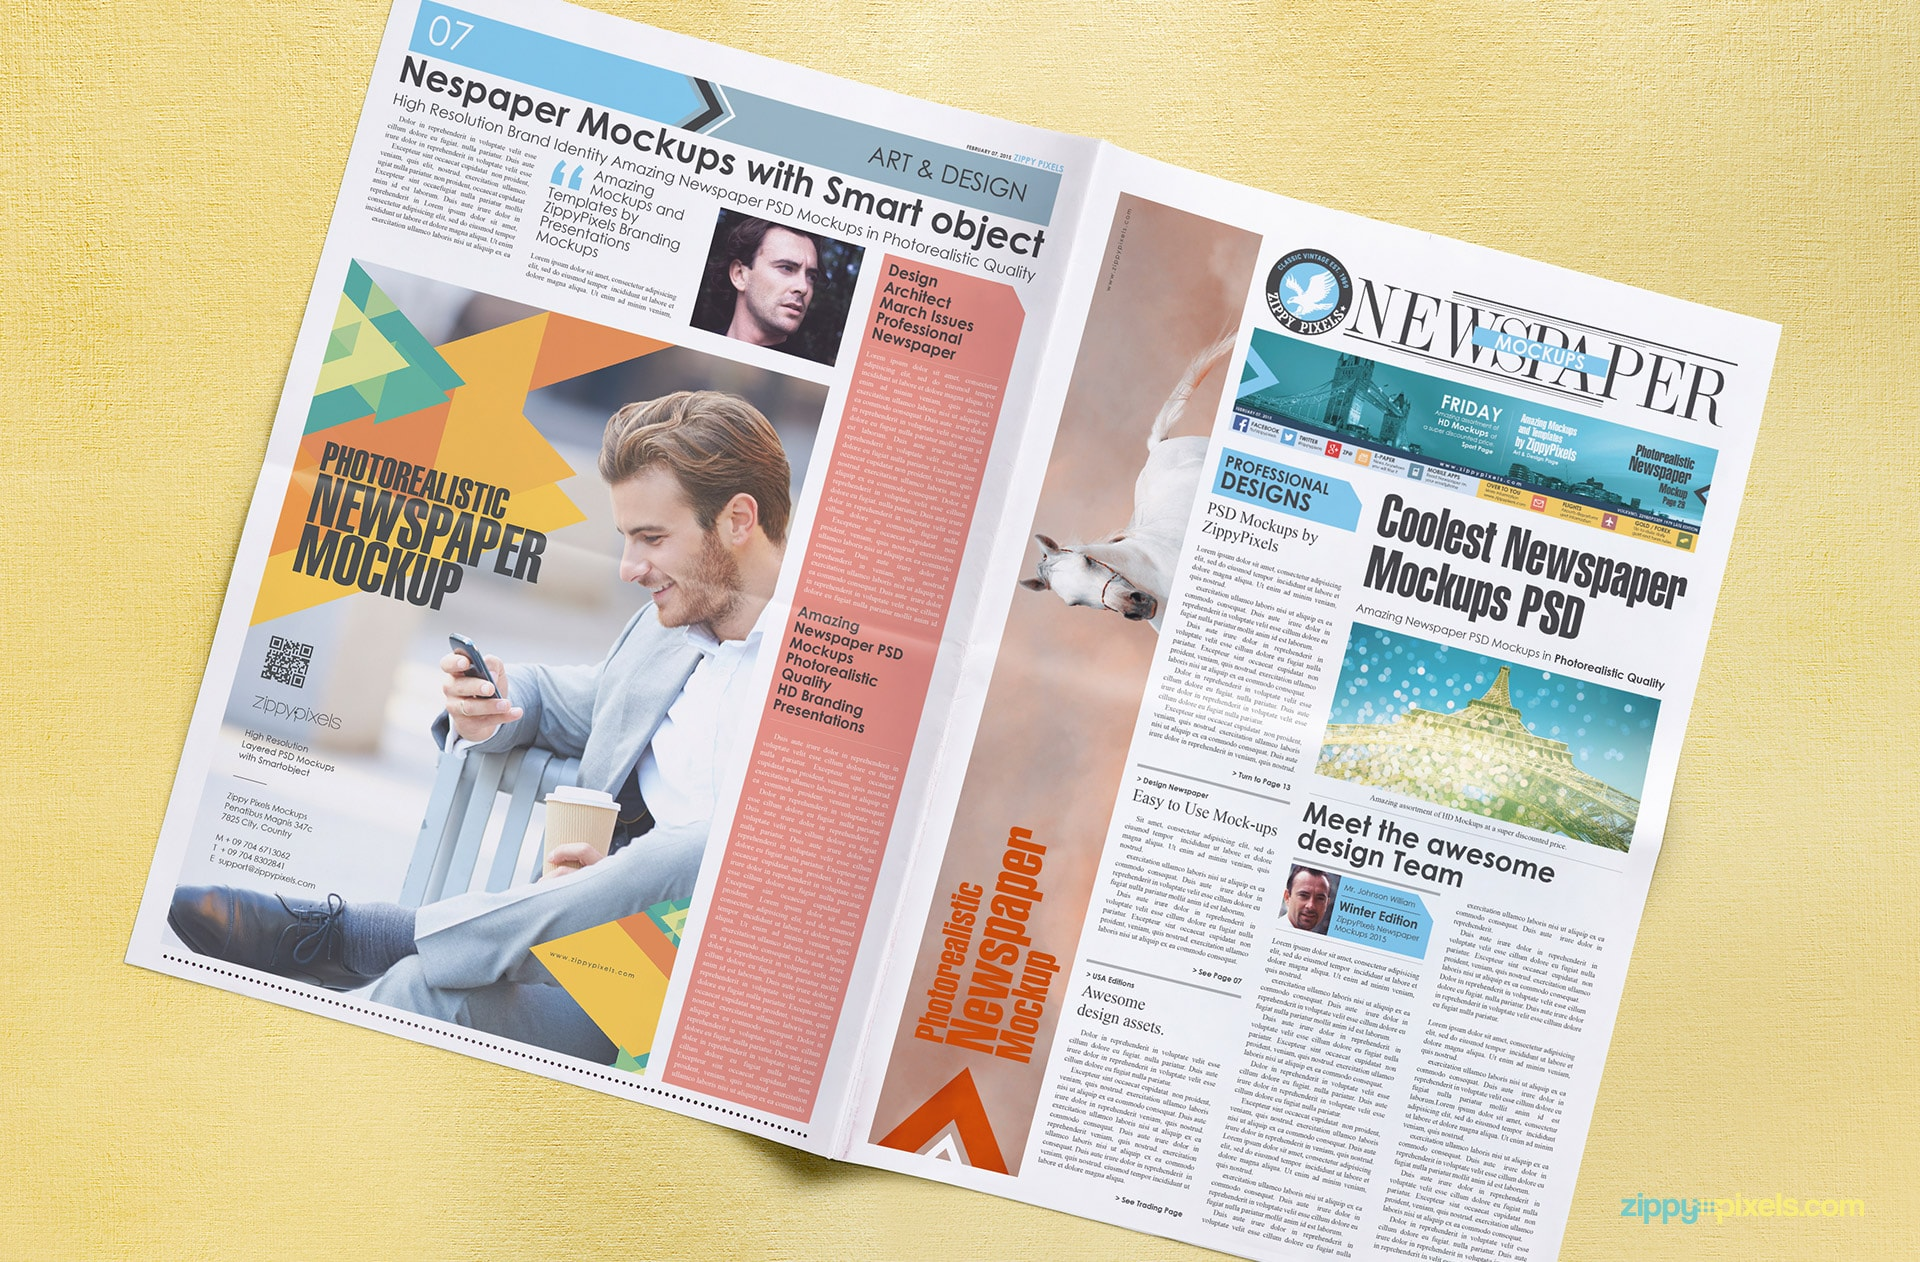 High angle shot of tabloid newspaper mockup with full column ad & large ad